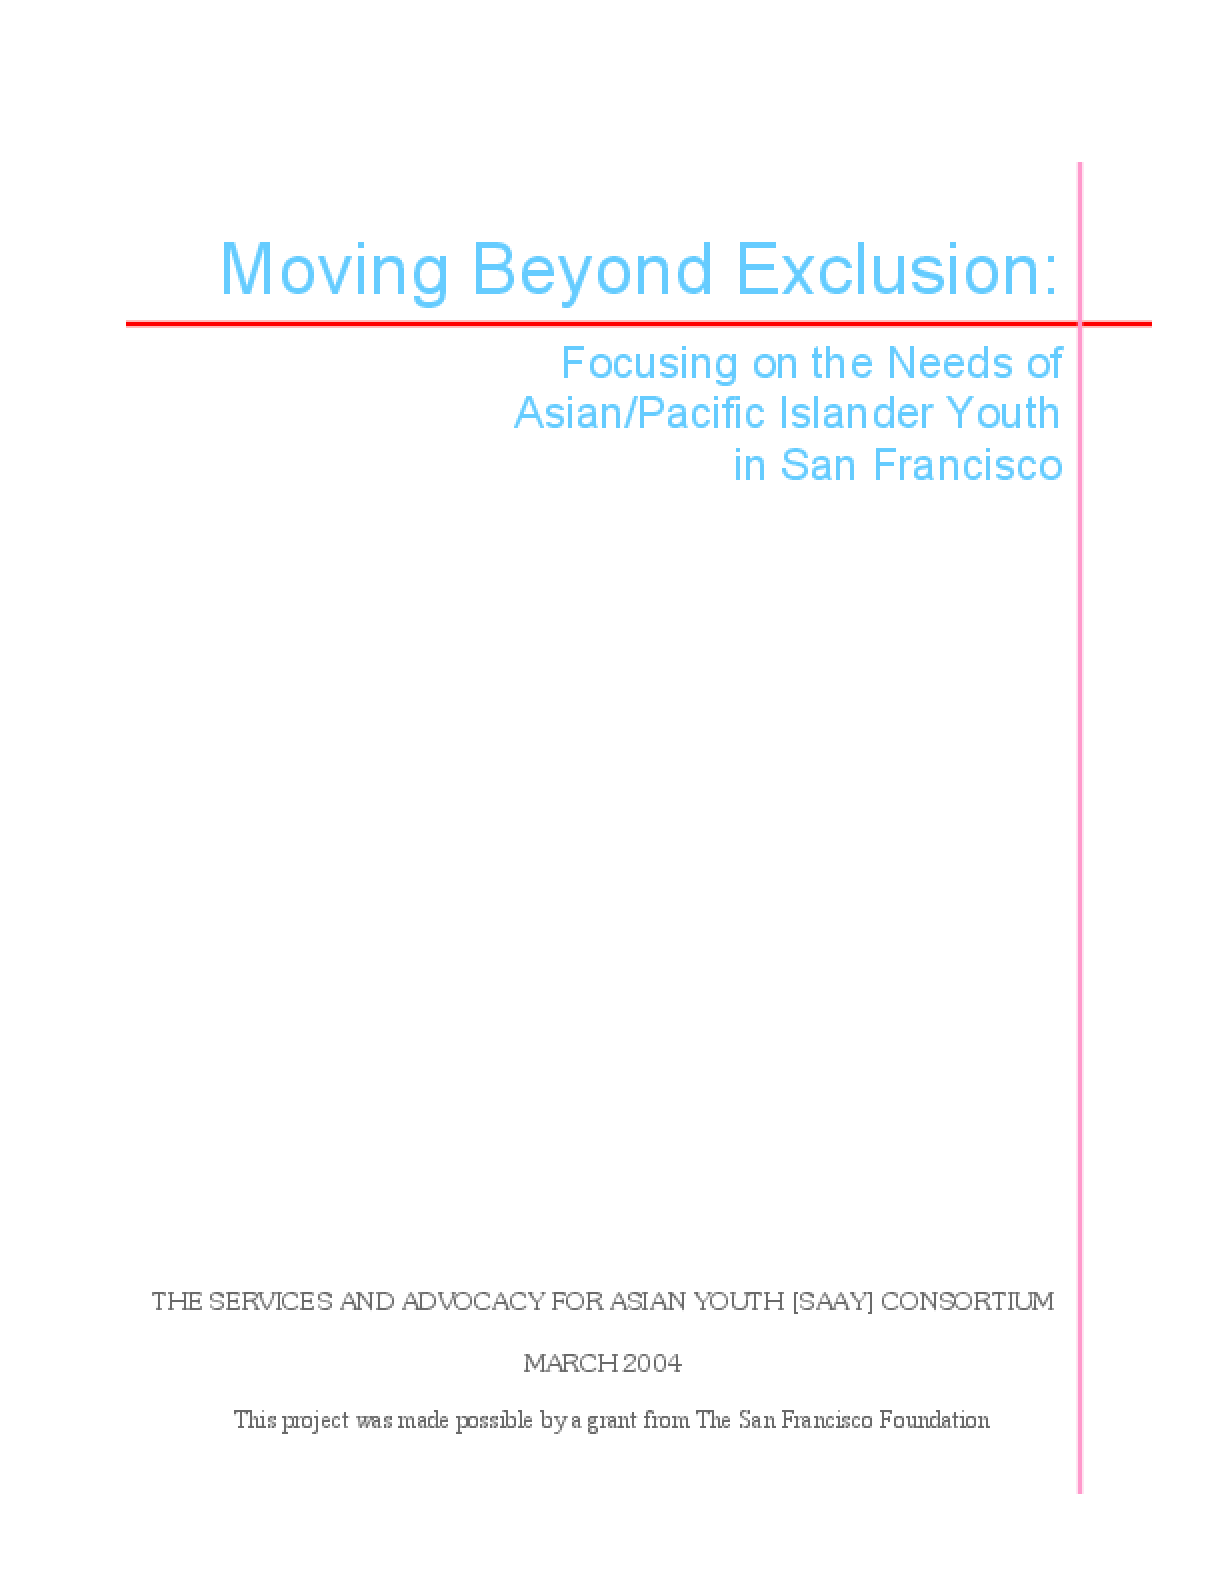 Moving Beyond Exclusion: Focusing on the Needs of Asian/Pacific Islander Youth in San Francisco